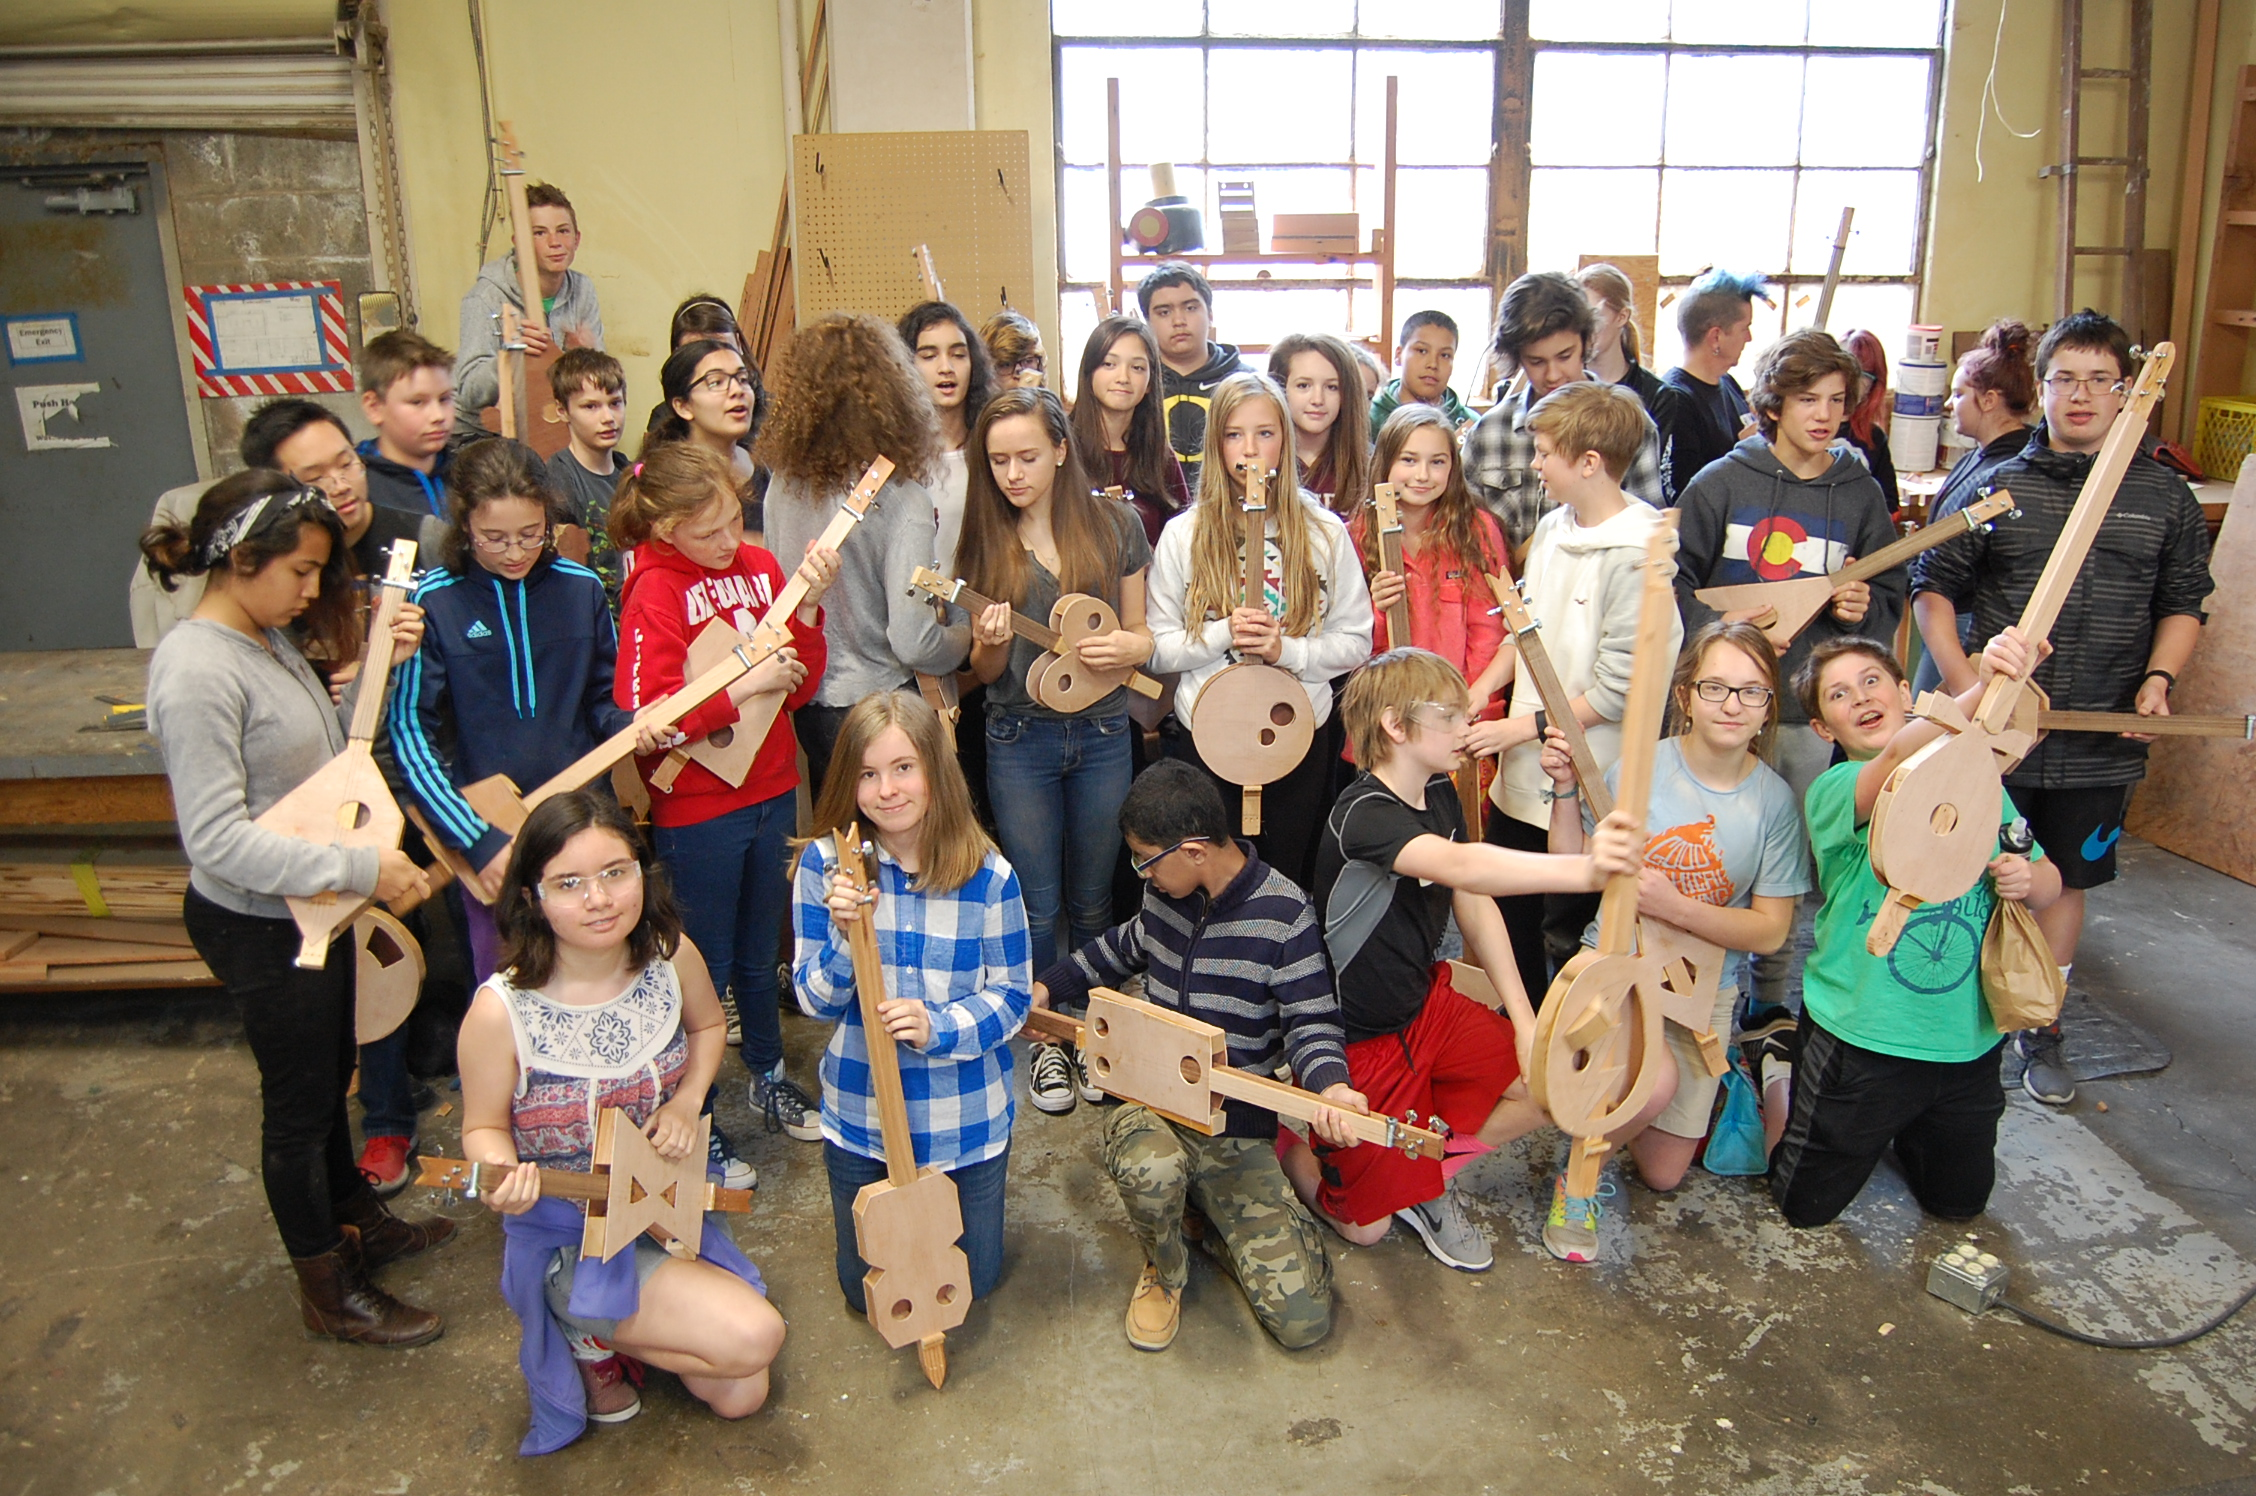 7th grade class posing with their new 3-string instruments